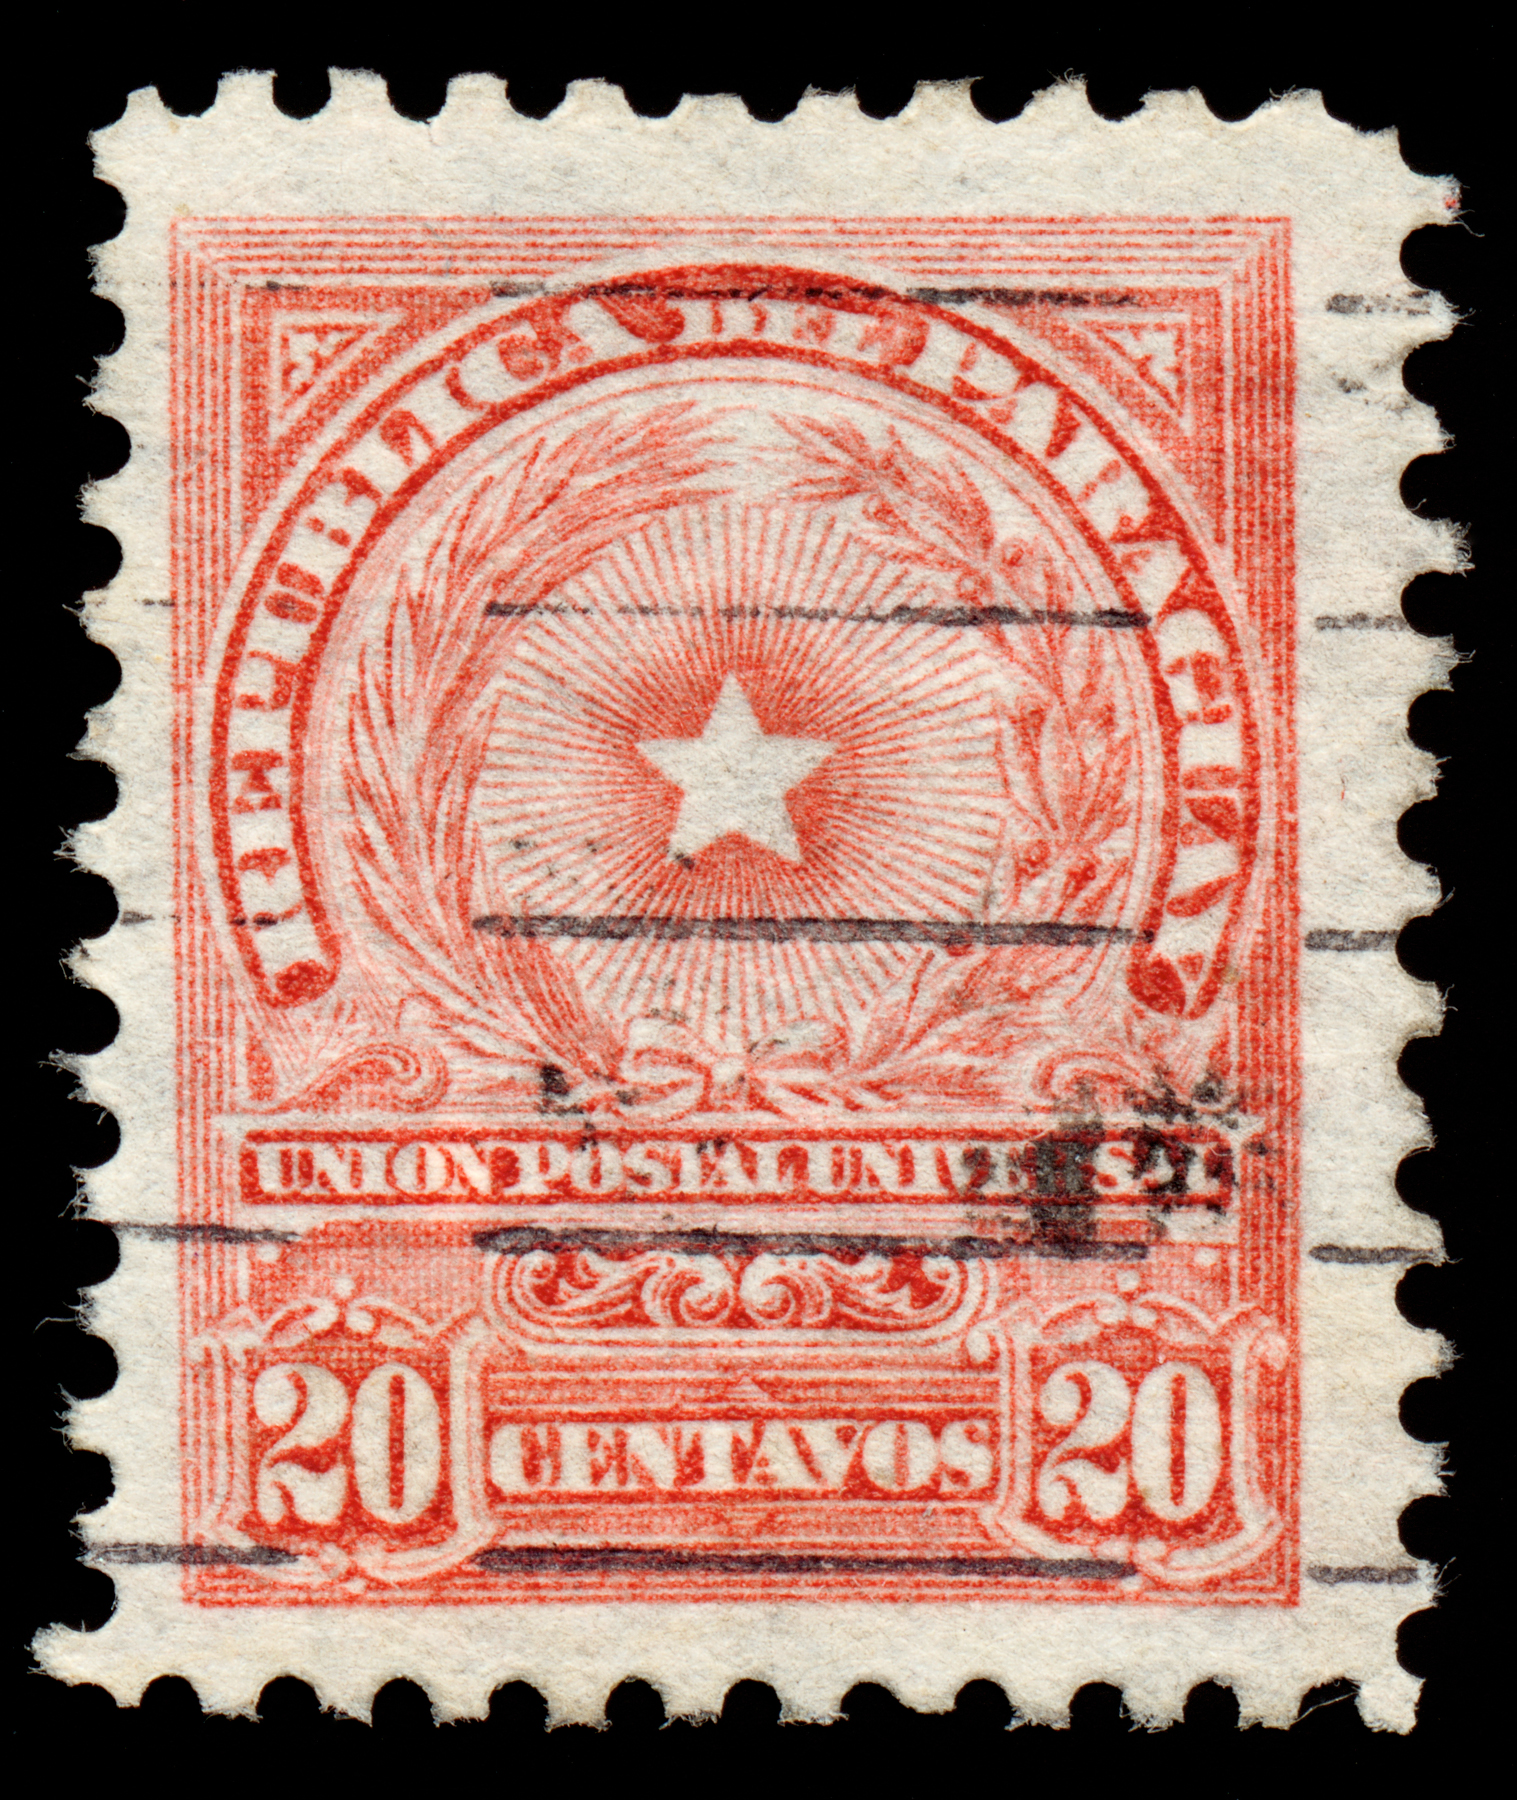 Red state arms stamp photo